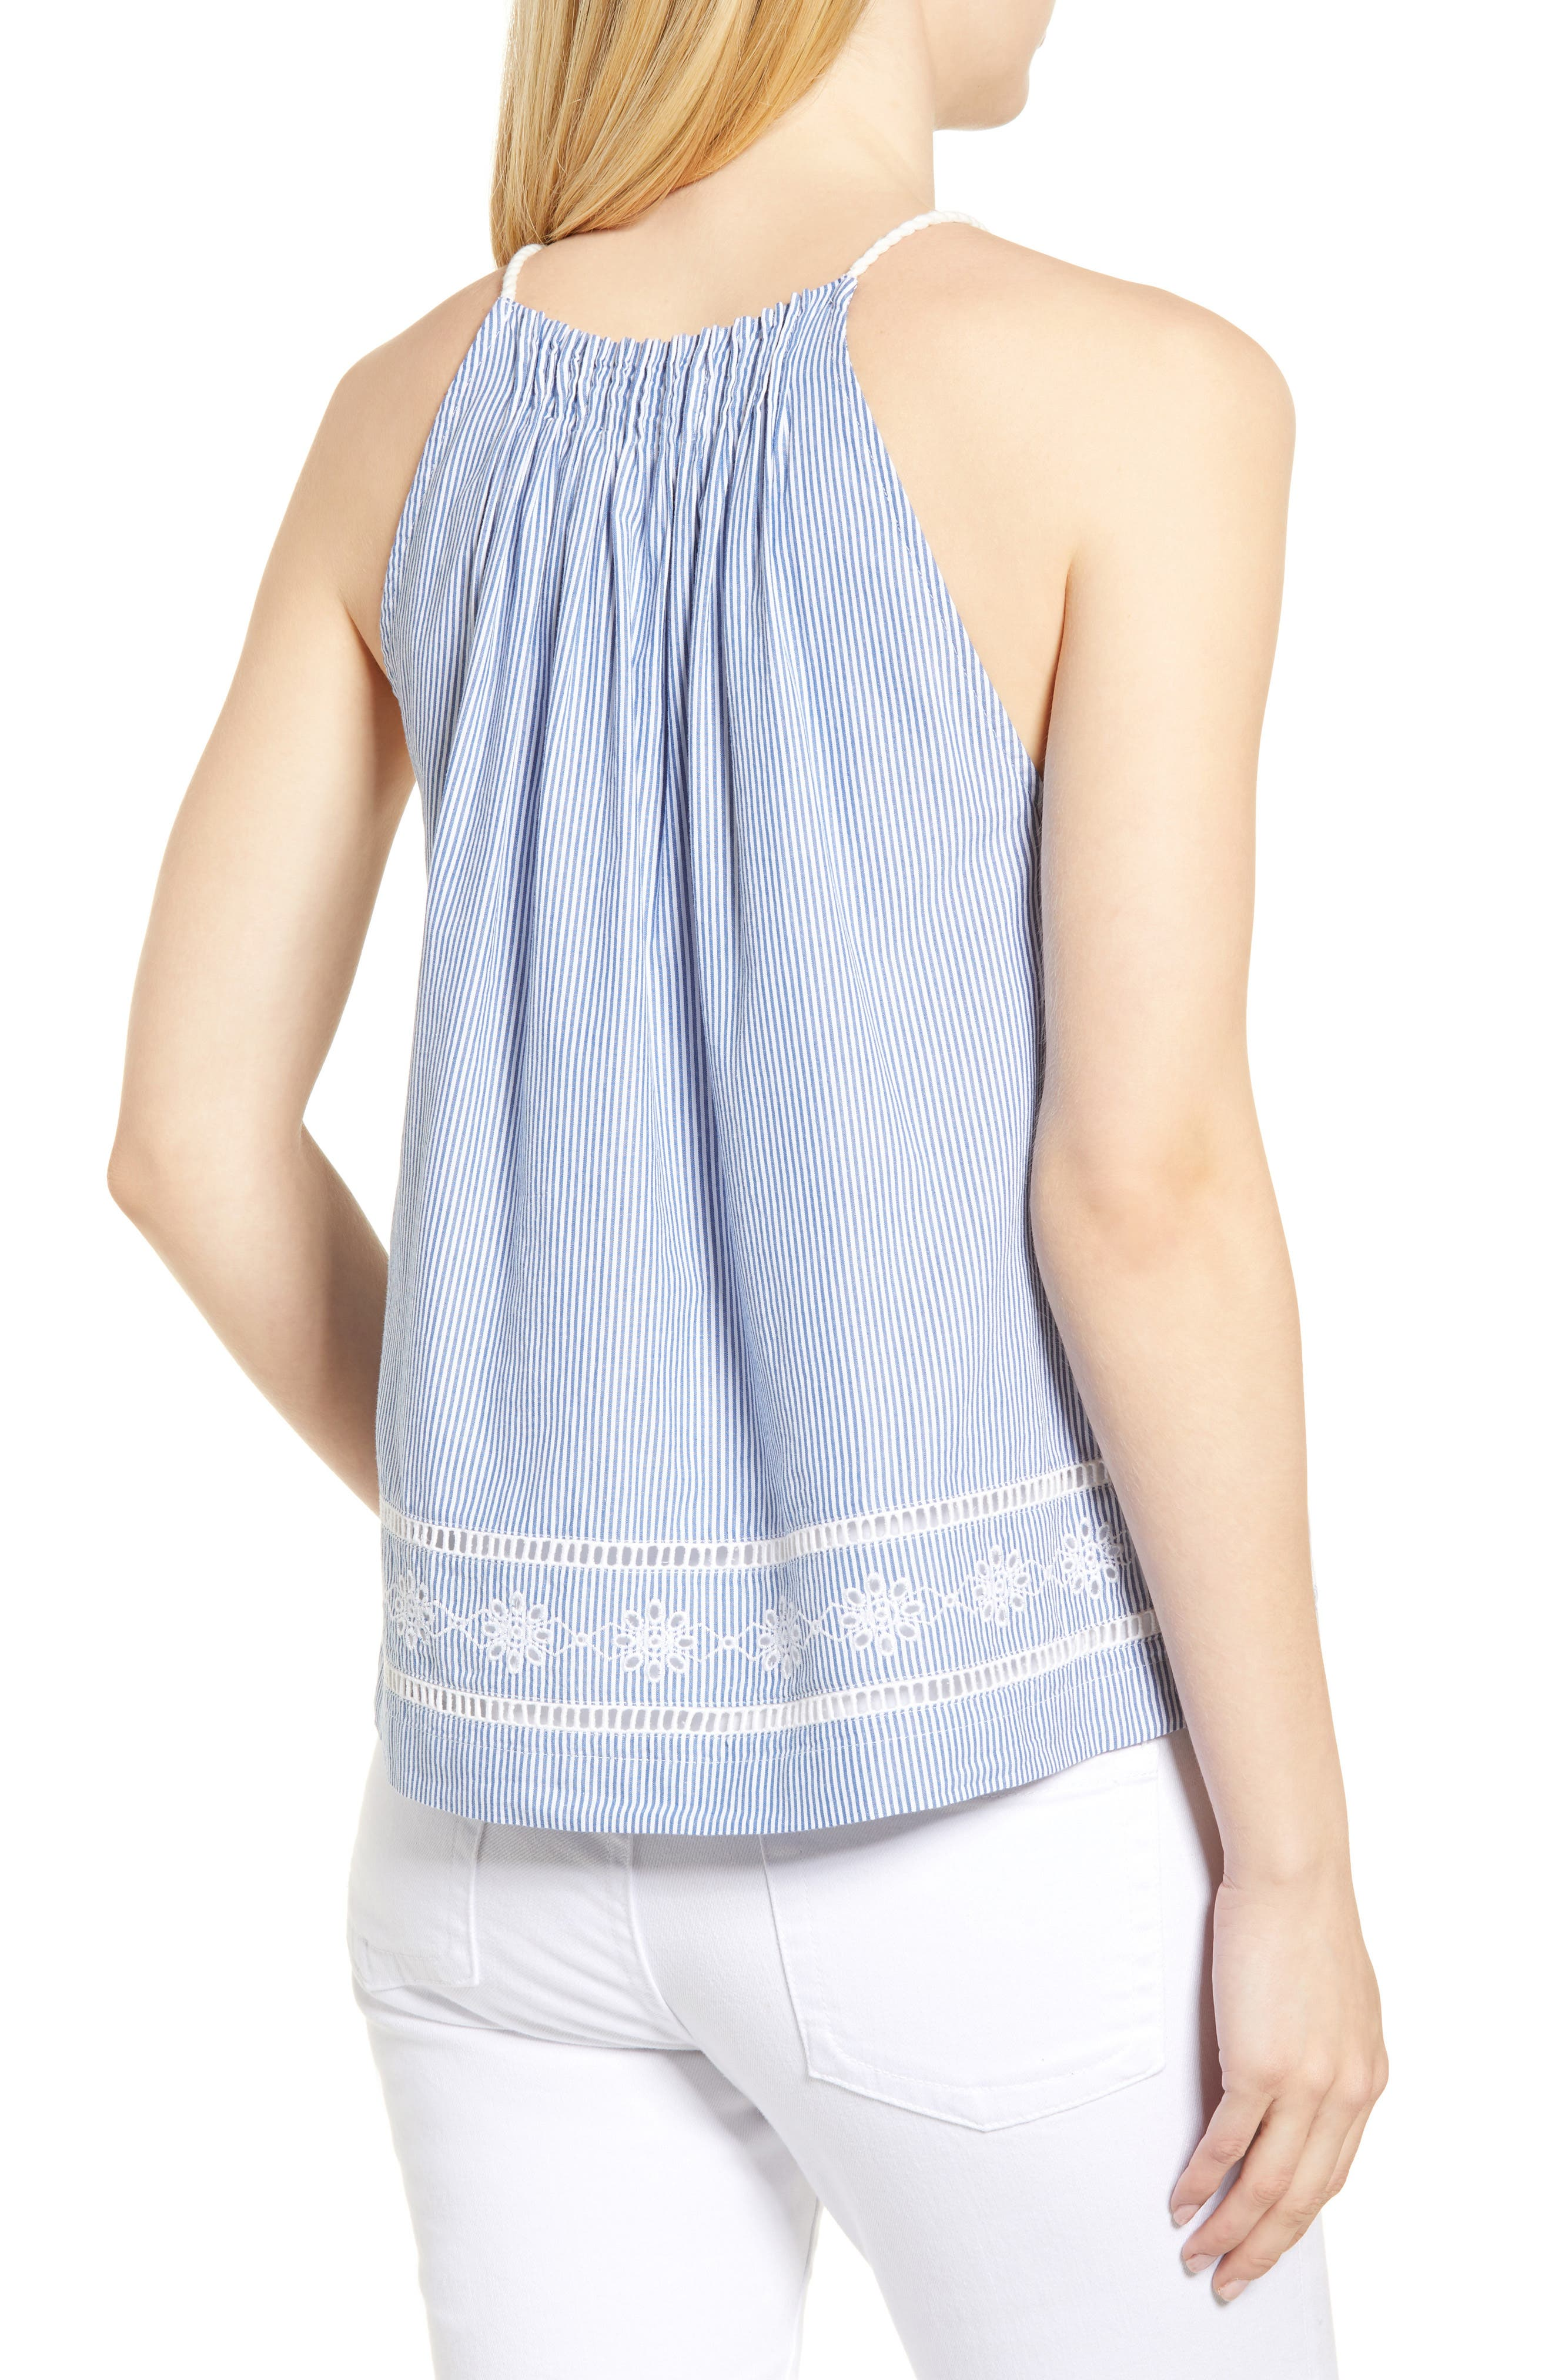 Sandbar Stripe Sleeveless Top,                             Alternate thumbnail 2, color,                             MOONSHINE